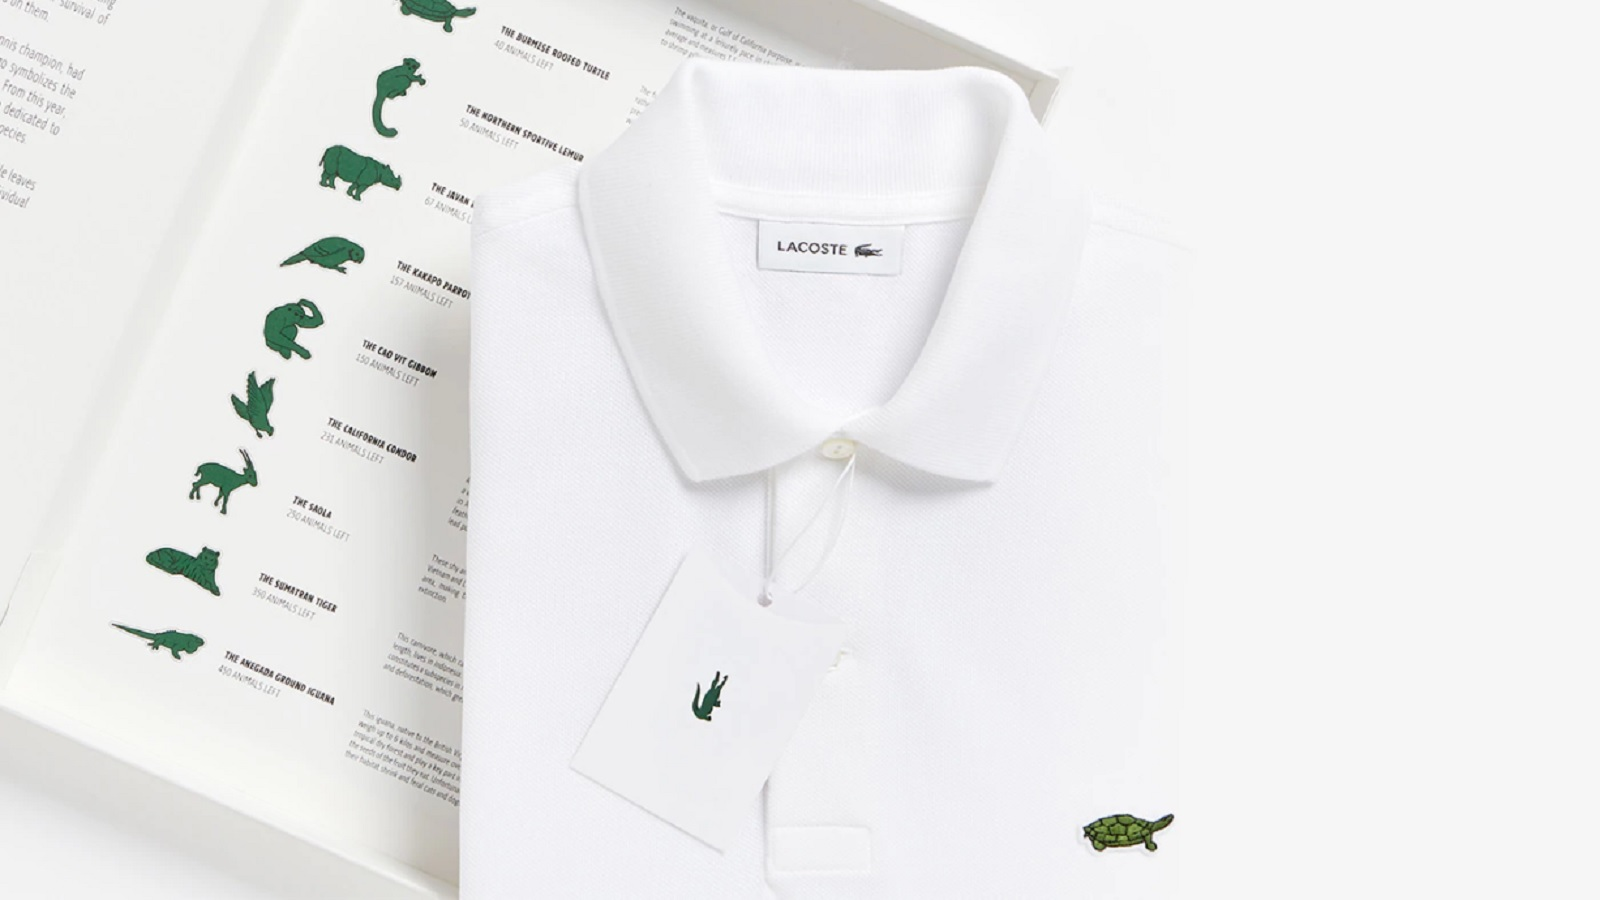 b21cdf0b Why Did Lacoste Ditch Its Legendary Crocodile Design?